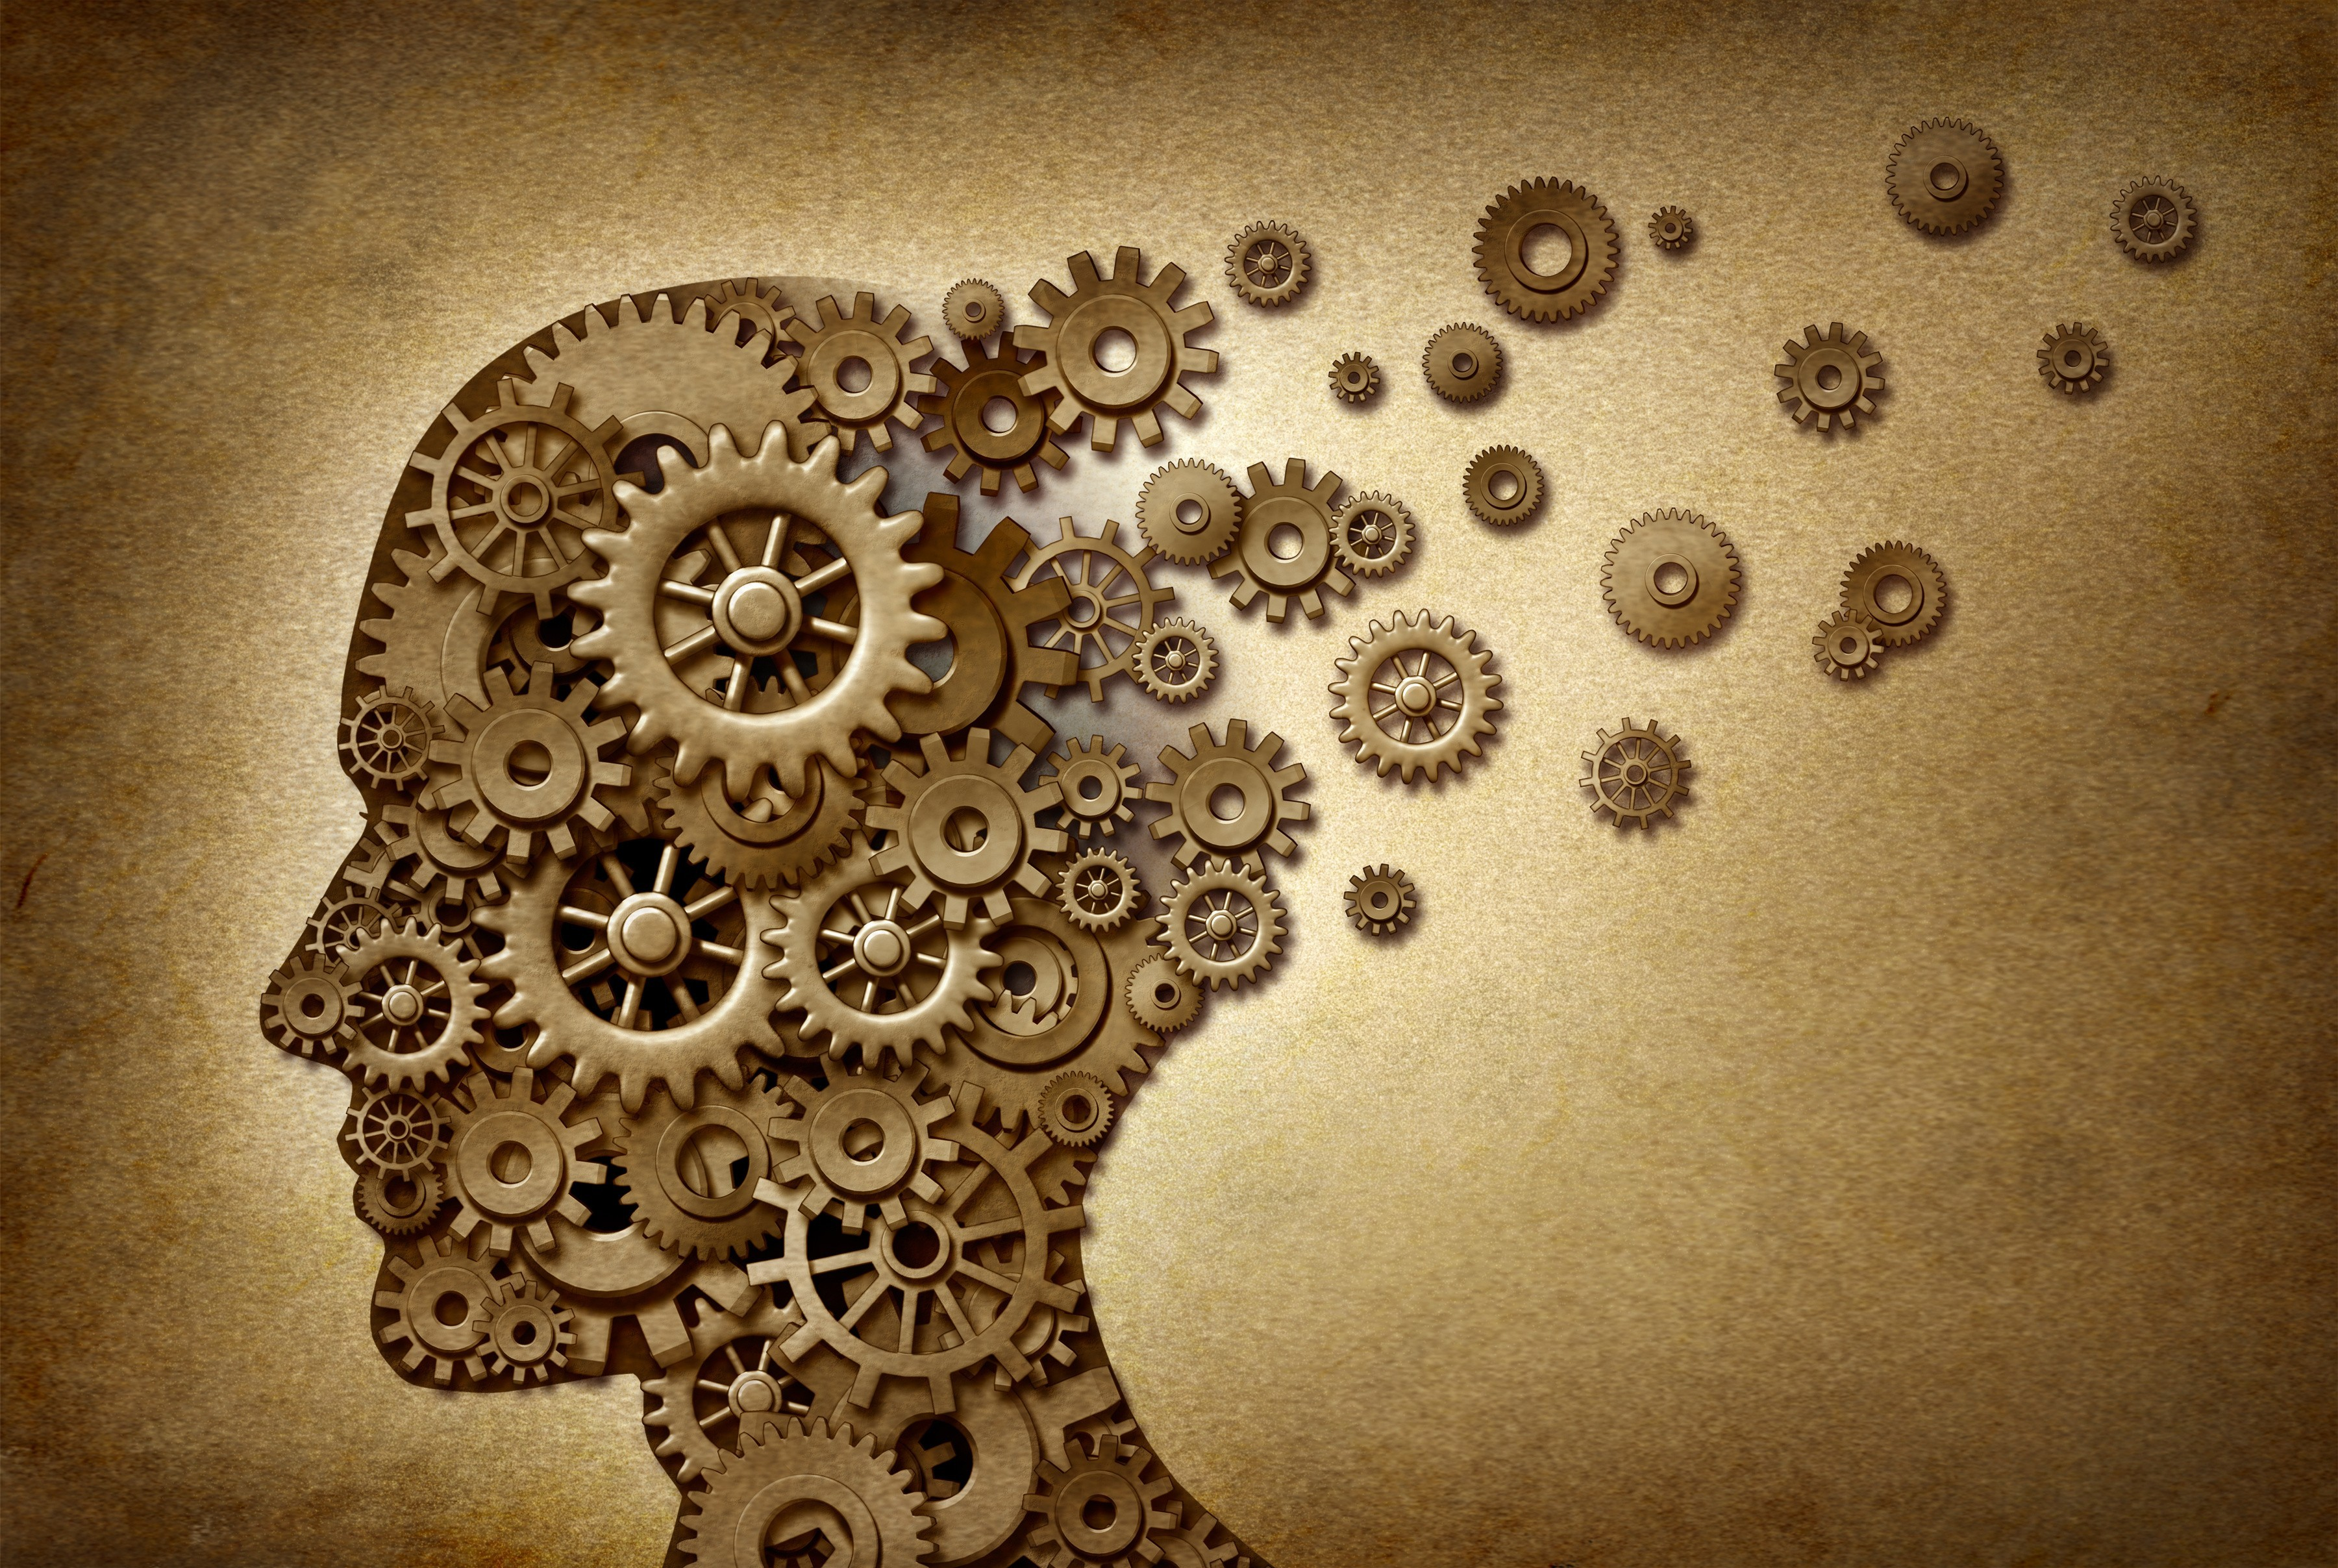 A mind with gears